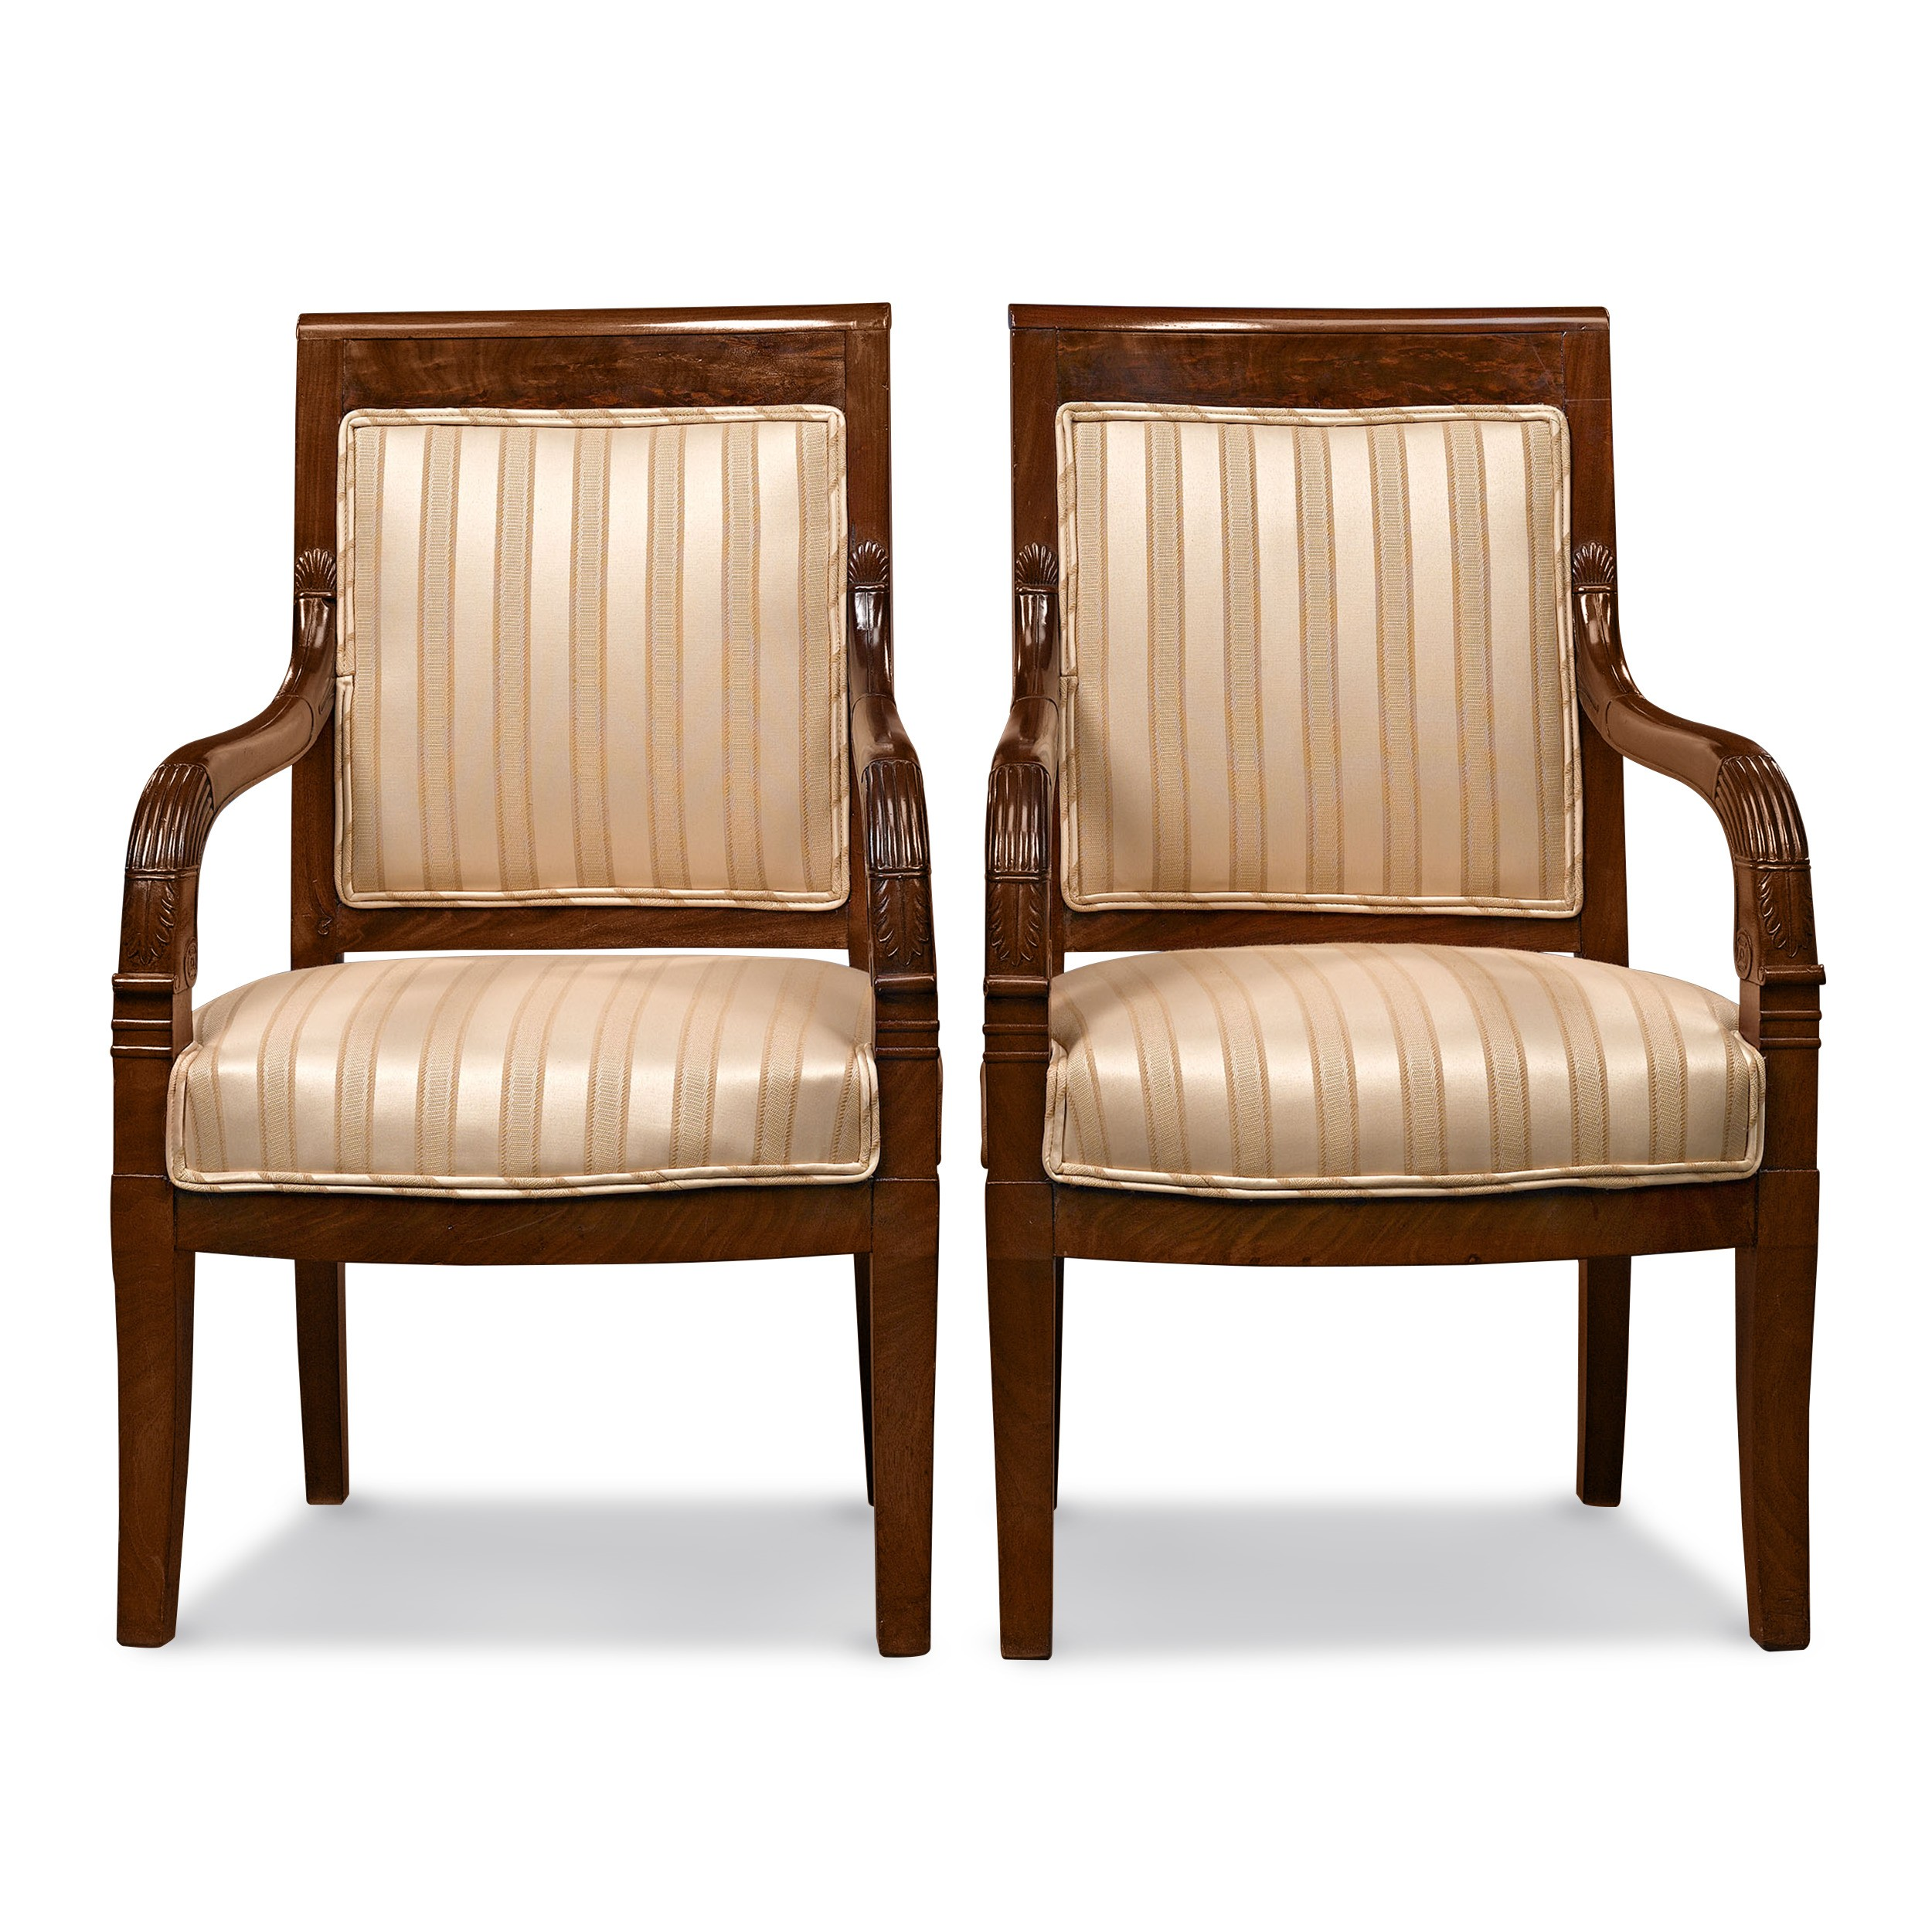 Directoire Upholstered Armchairs Directoire Upholstered Armchairs  Directoire Upholstered Armchairs Directoire Upholstered Armchairs